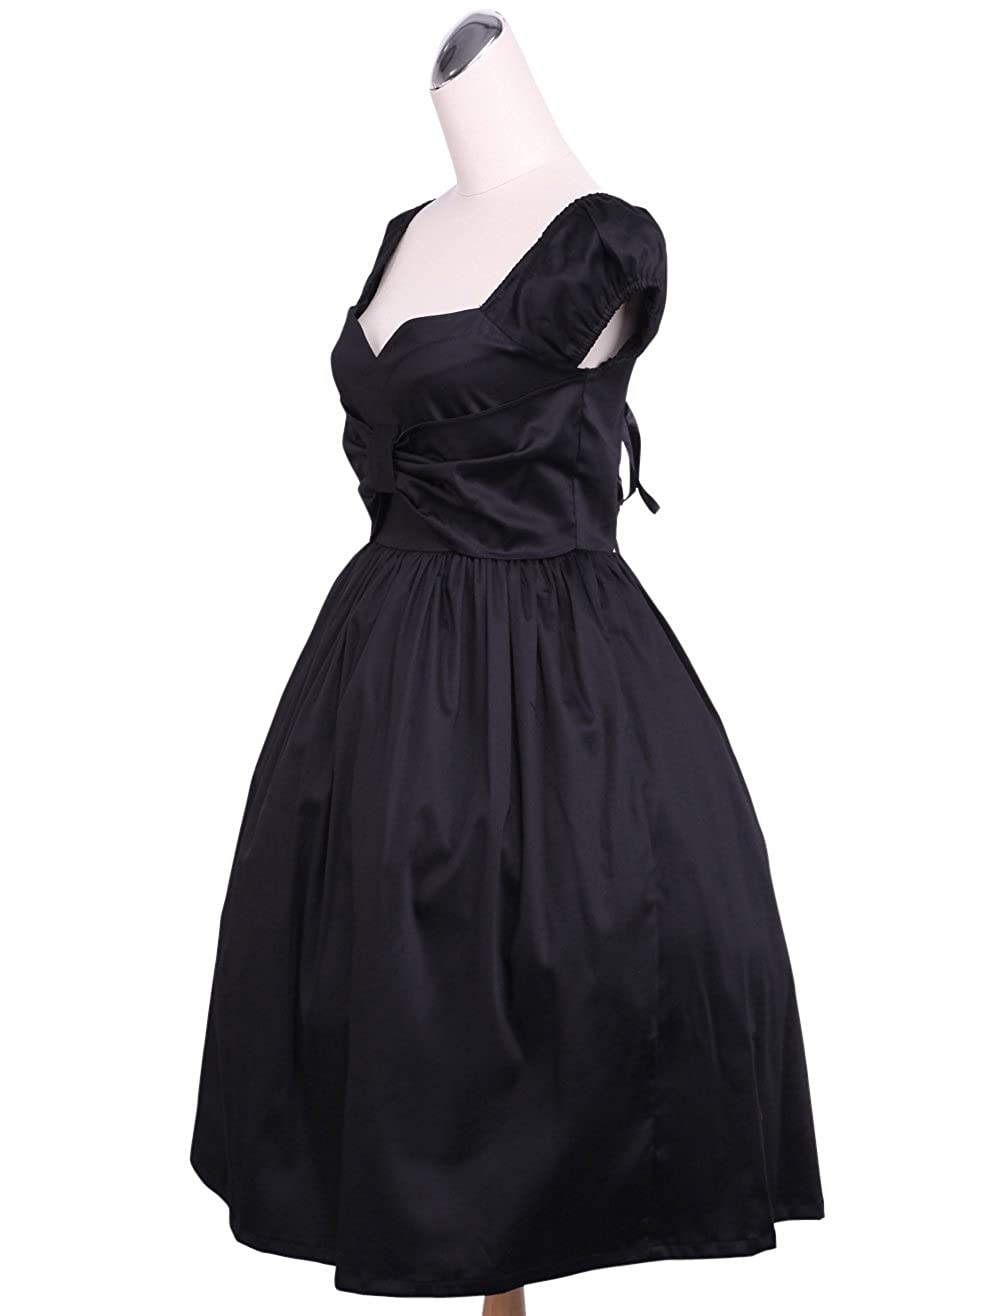 ac941ea9a4 Antaina Black Cotton Low-Cut Sexy Vintage Gothic Lolita Cosplay Tube Dress  at Amazon Women s Clothing store